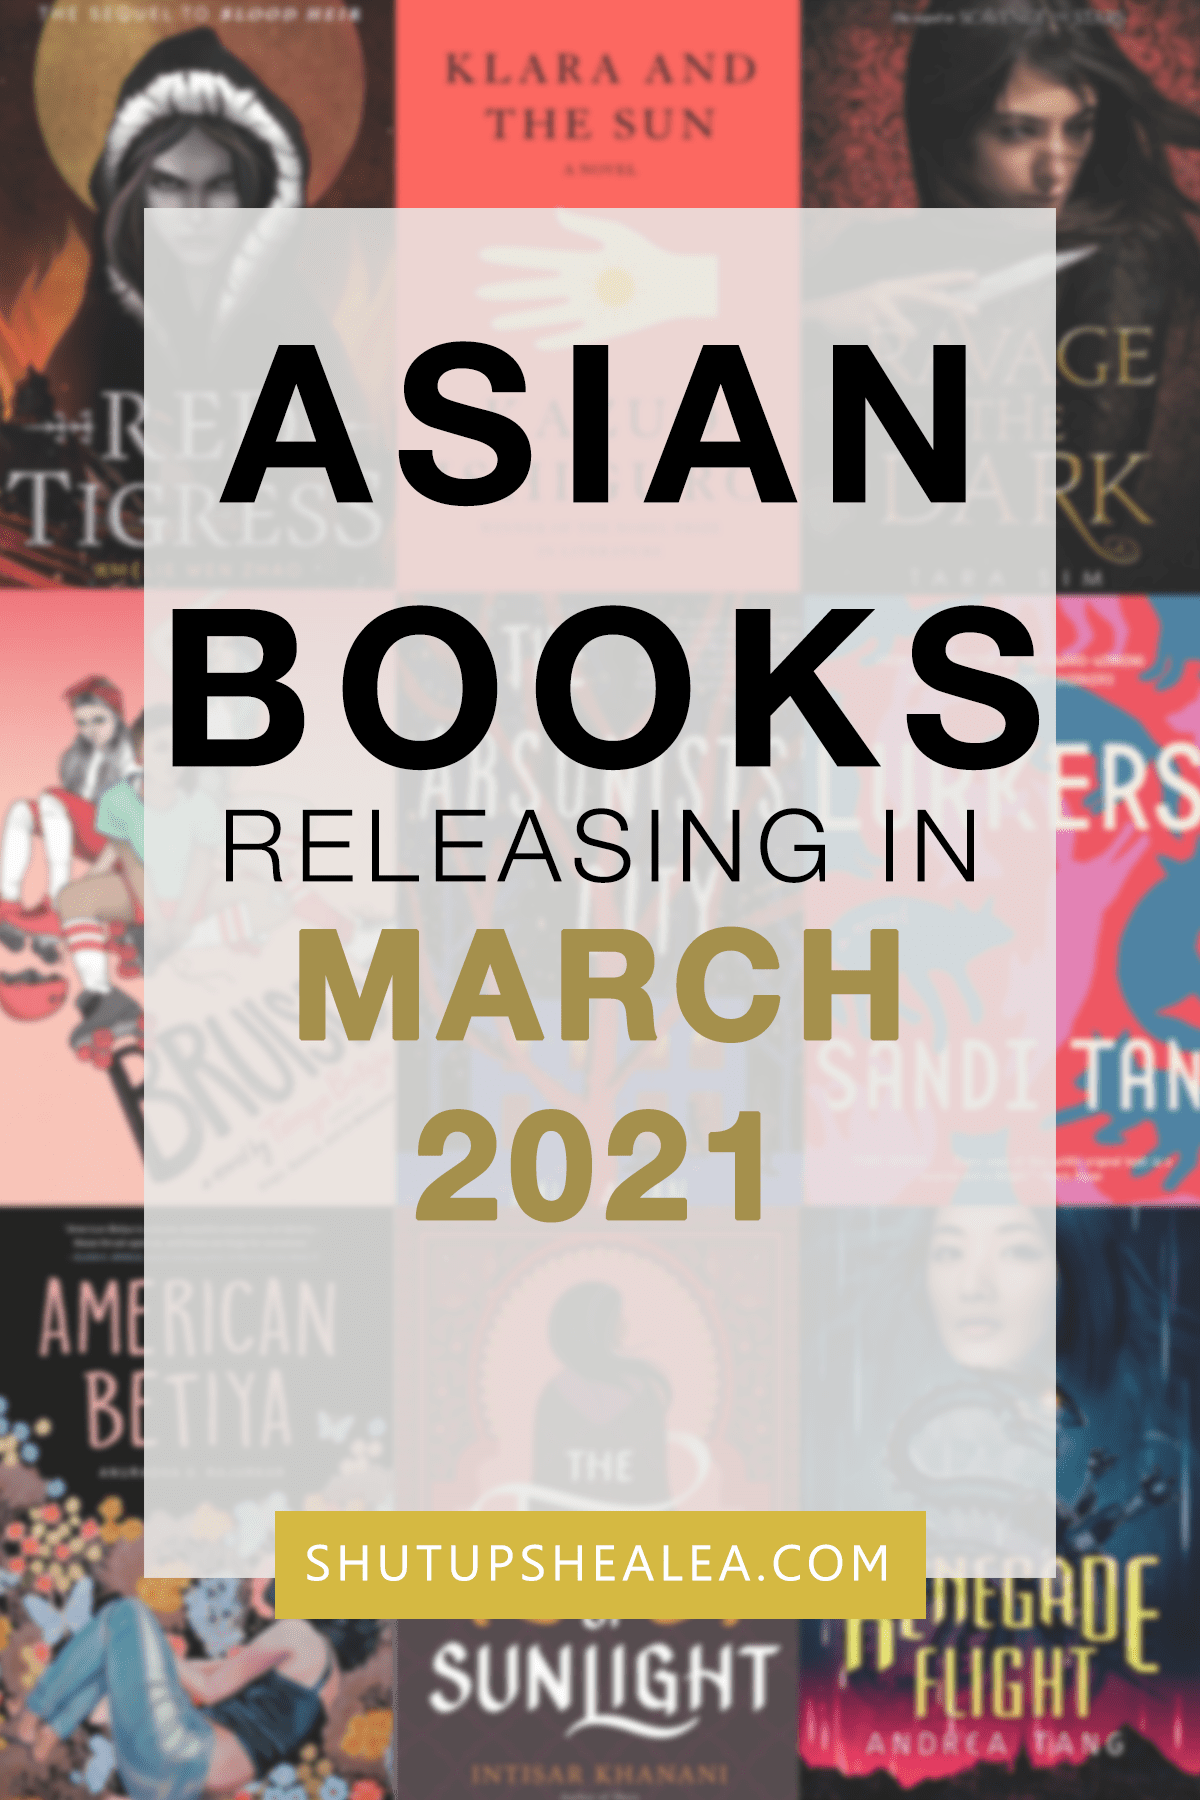 Books on the Rice: March 2021 releases from Asian authors